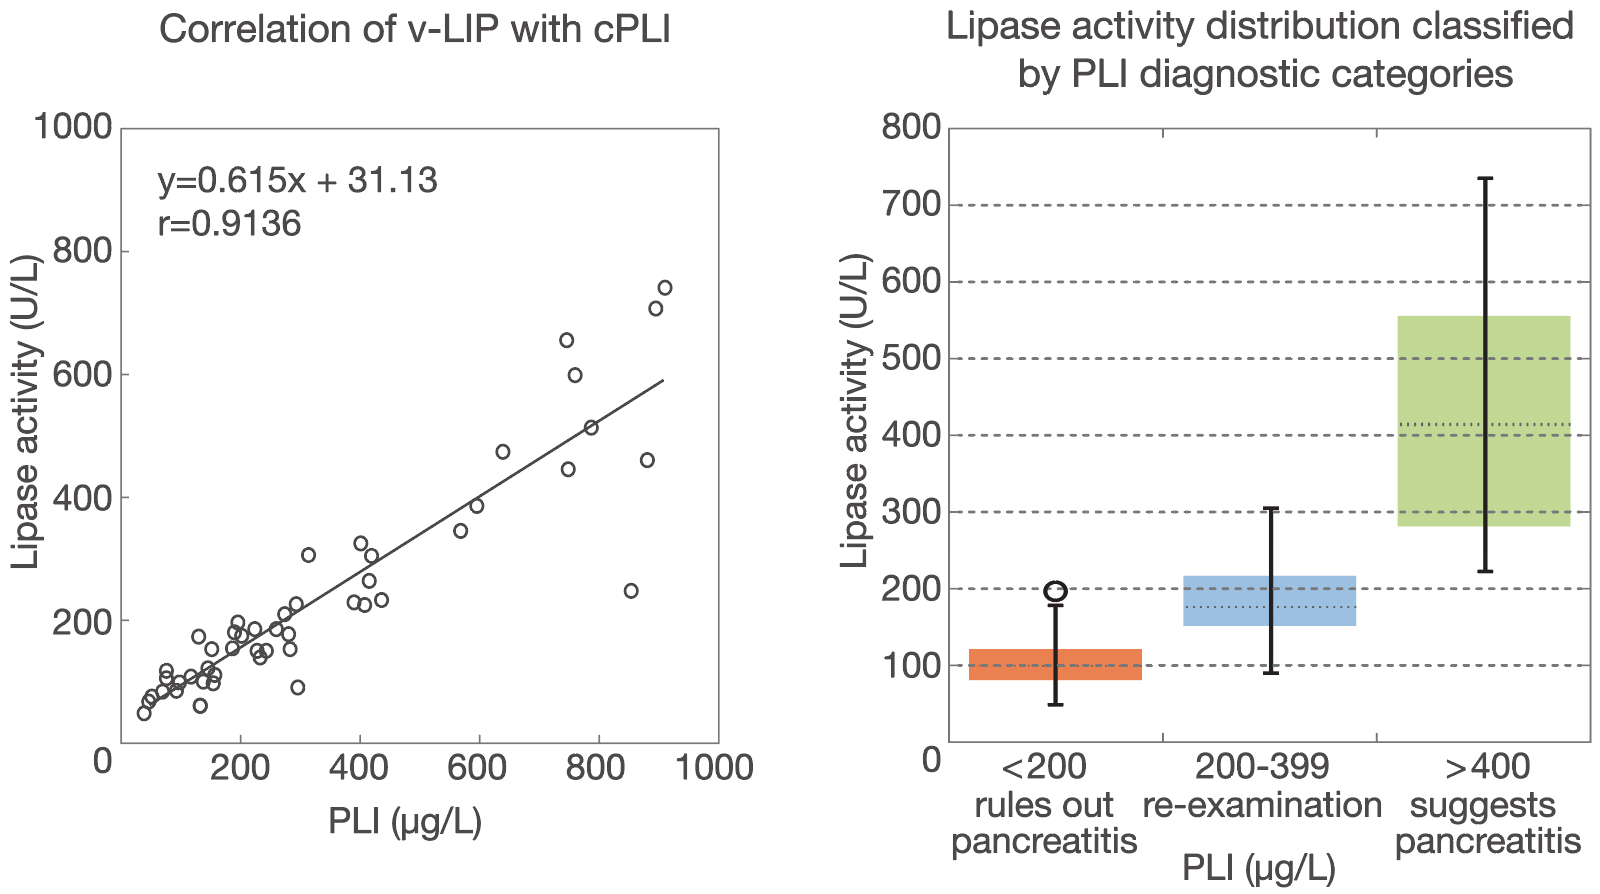 [image] Graphs of v-LIP with cPLI and Lipase activity distribution classified by PLI diagnostic categories